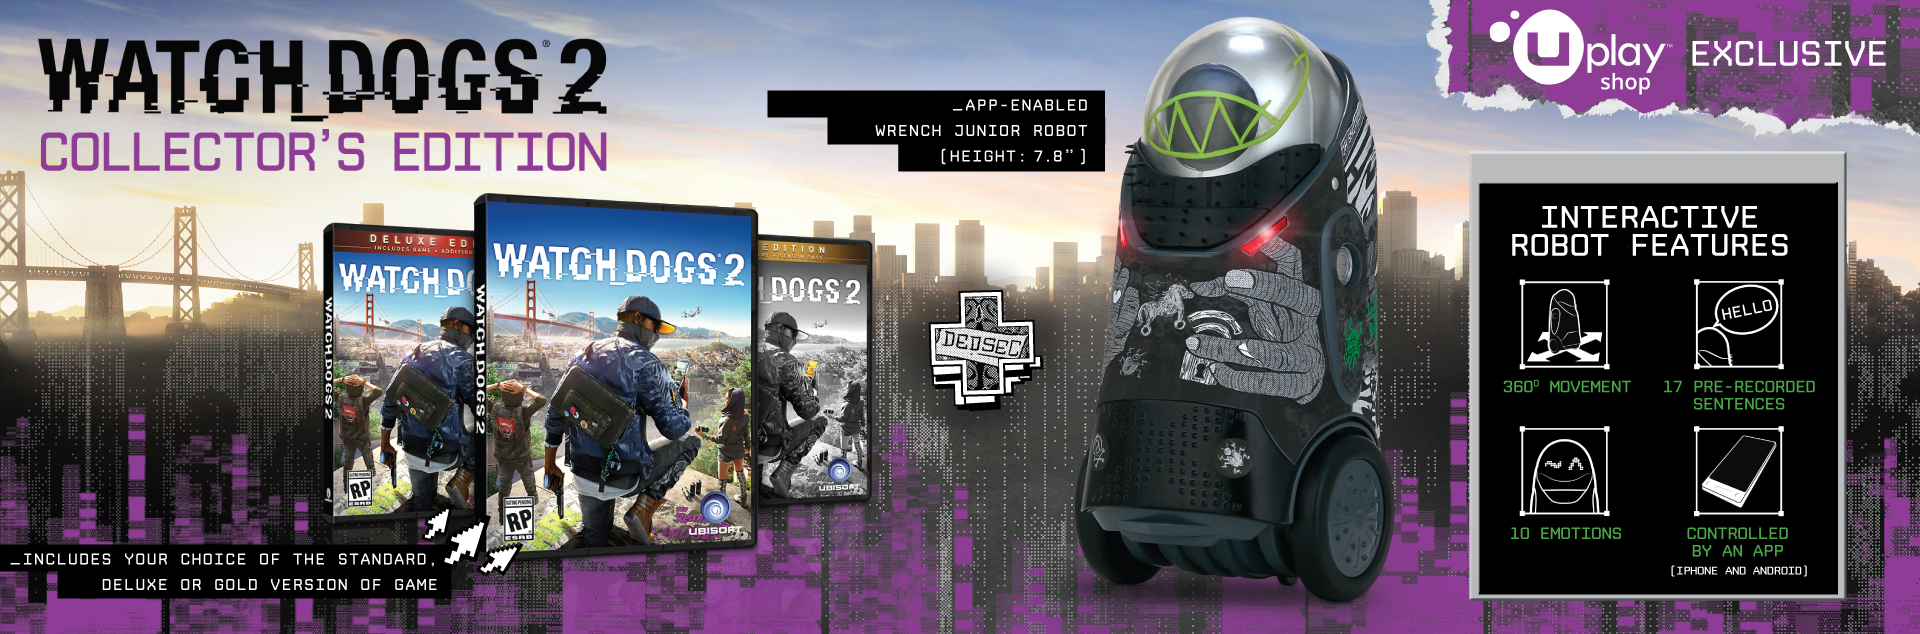 Watch Dogs 2 - Wrench Junior Robot Collector's Pack.